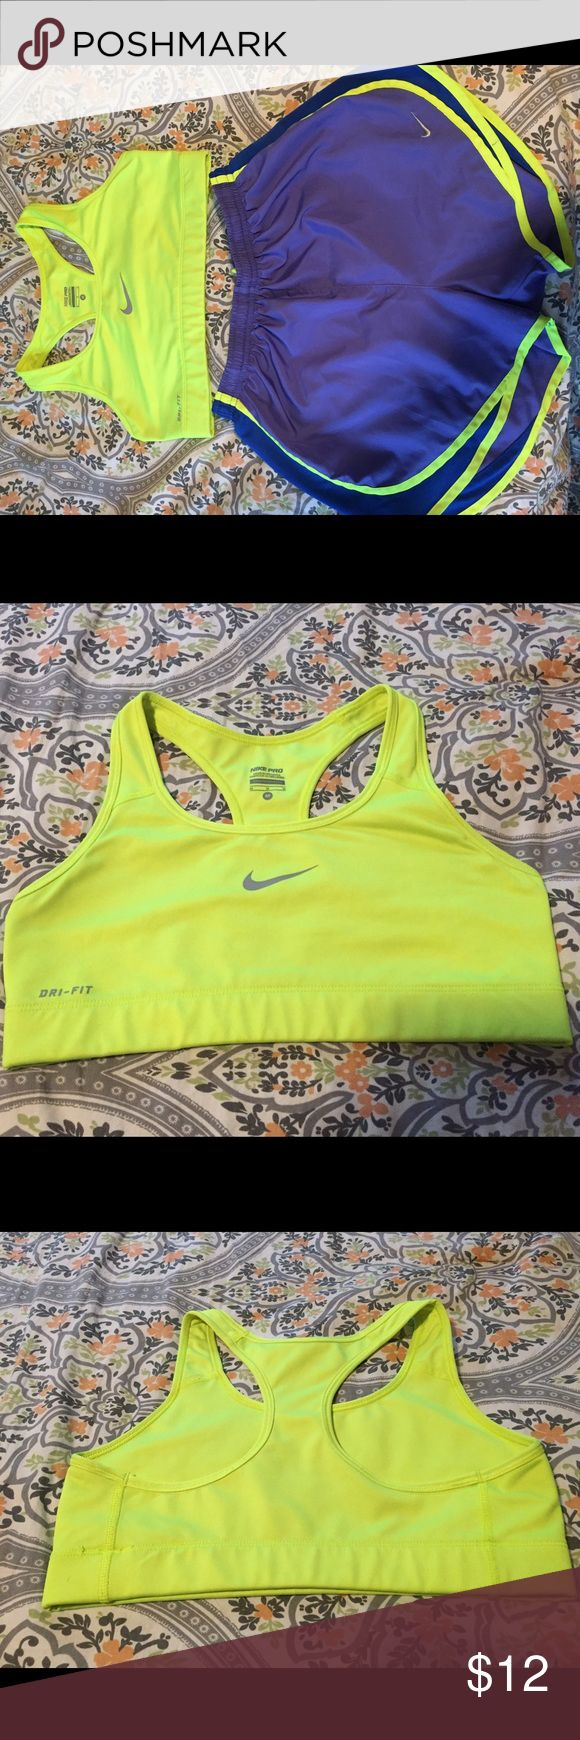 Nike Pro sports bra Neon yellow, medium support, dri-fit sports bra. Worn but in great condition. Nike Tops Crop Tops